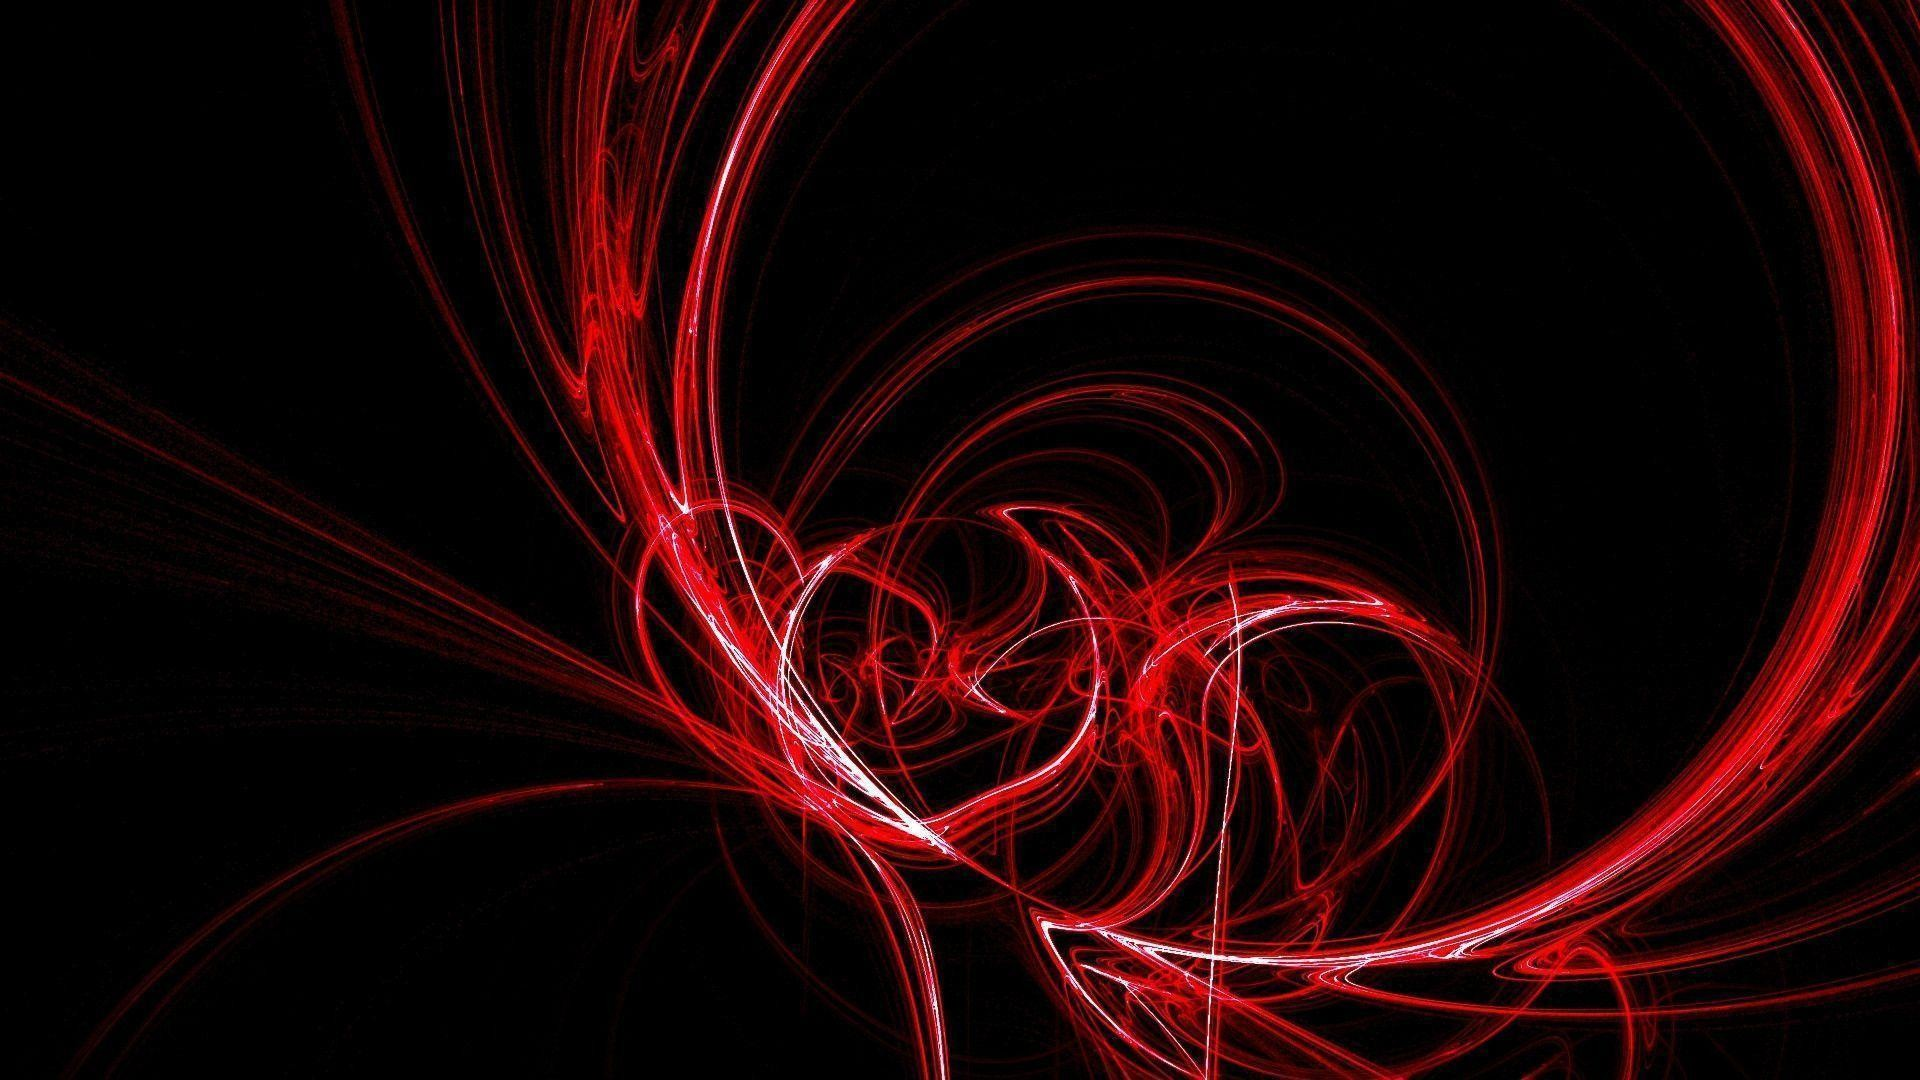 1920x1080 Wallpapers For > Awesome Abstract Wallpapers Red